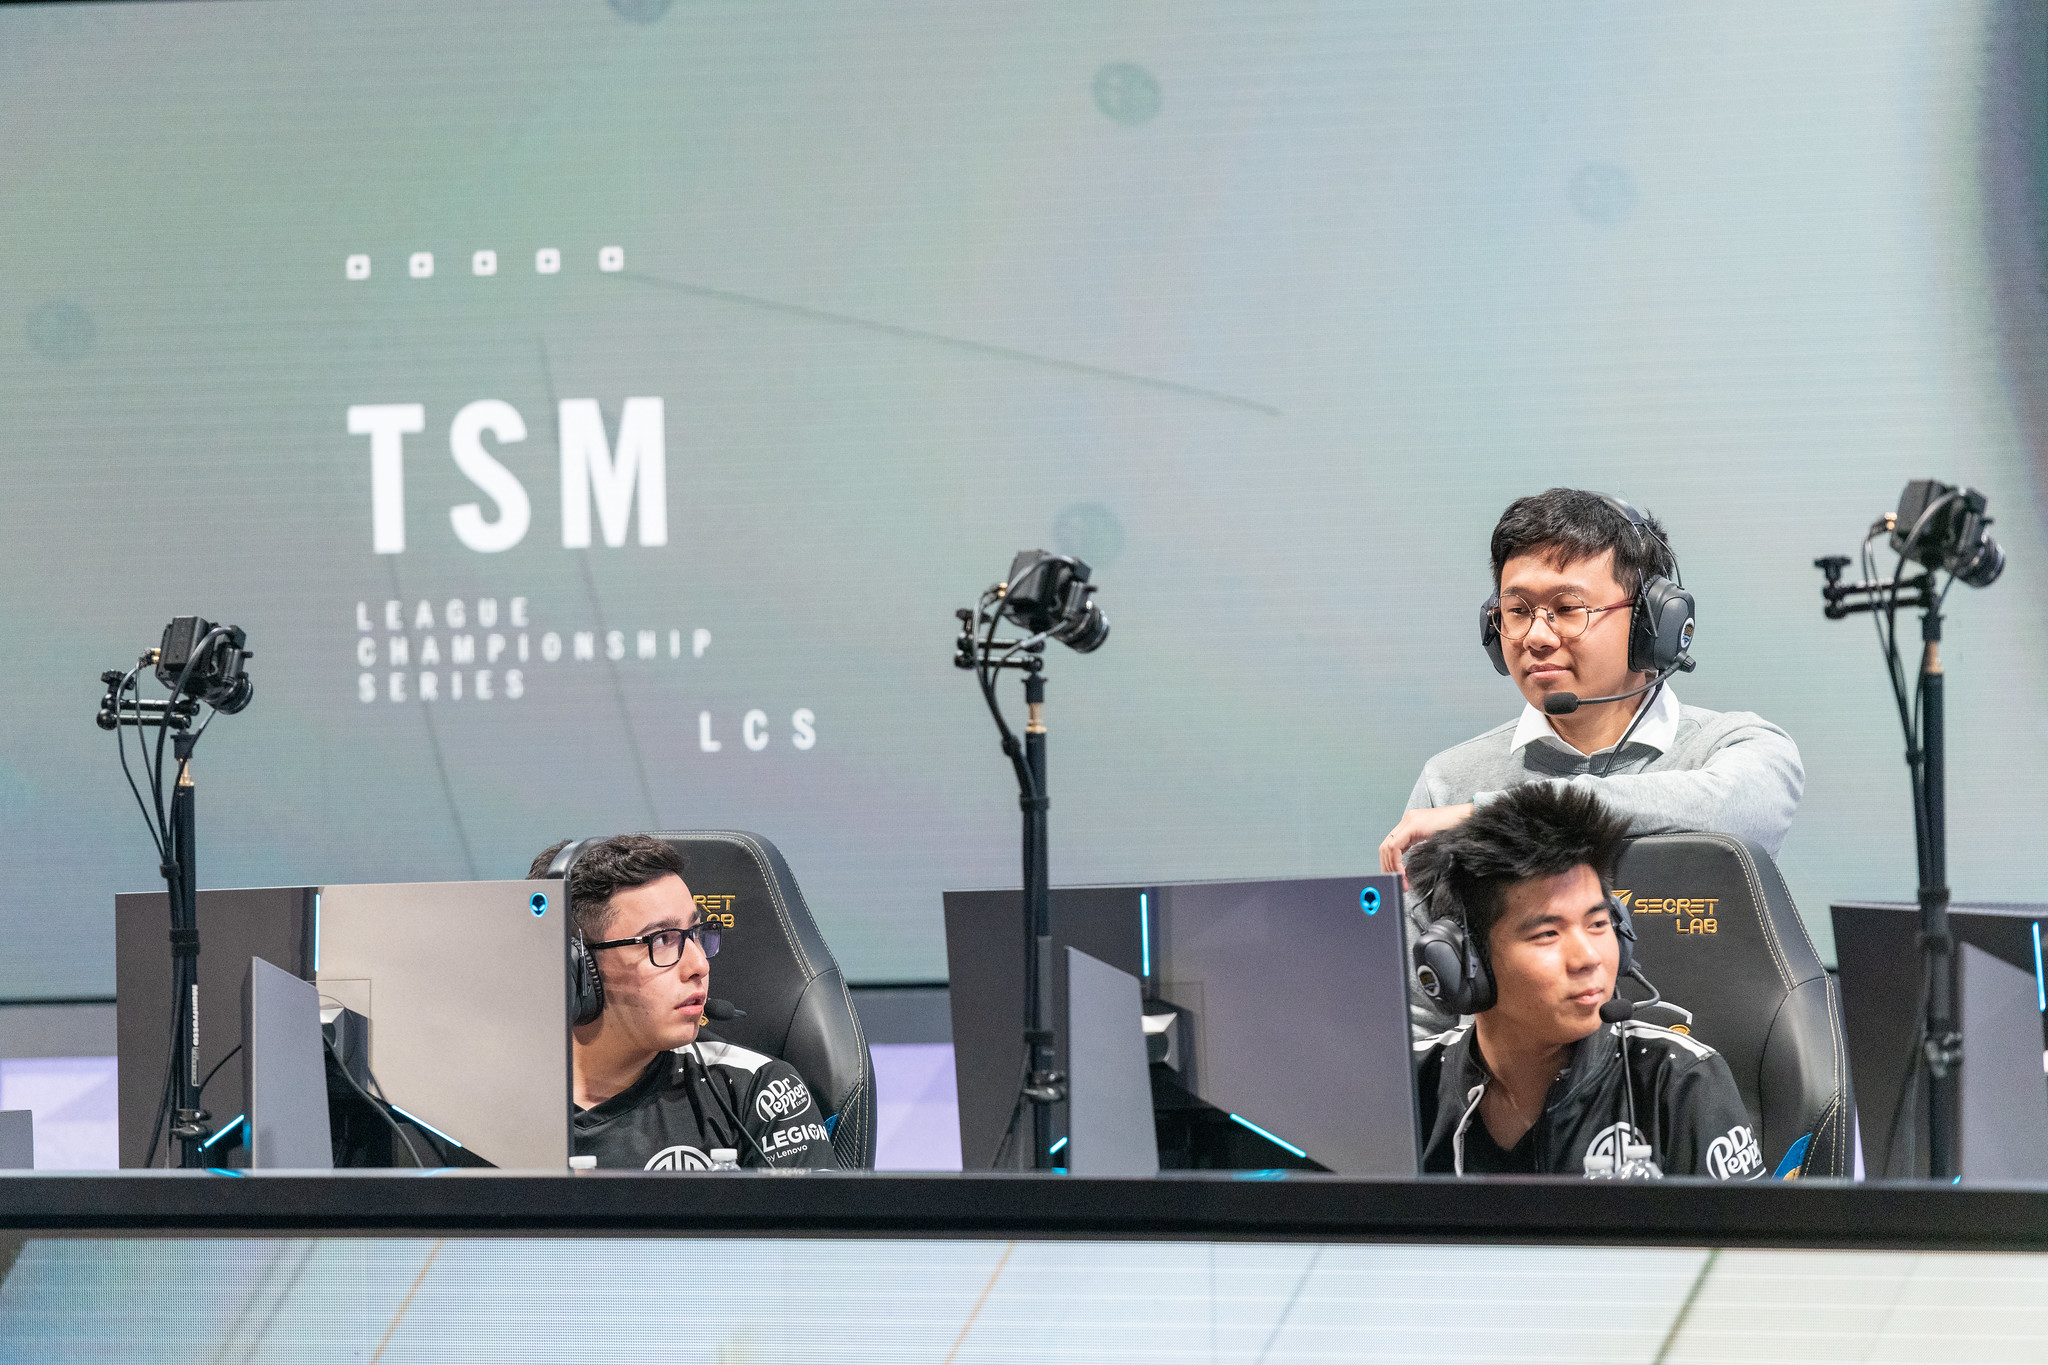 A desperate TSM enter the LCS playoffs with Academy reinforcements